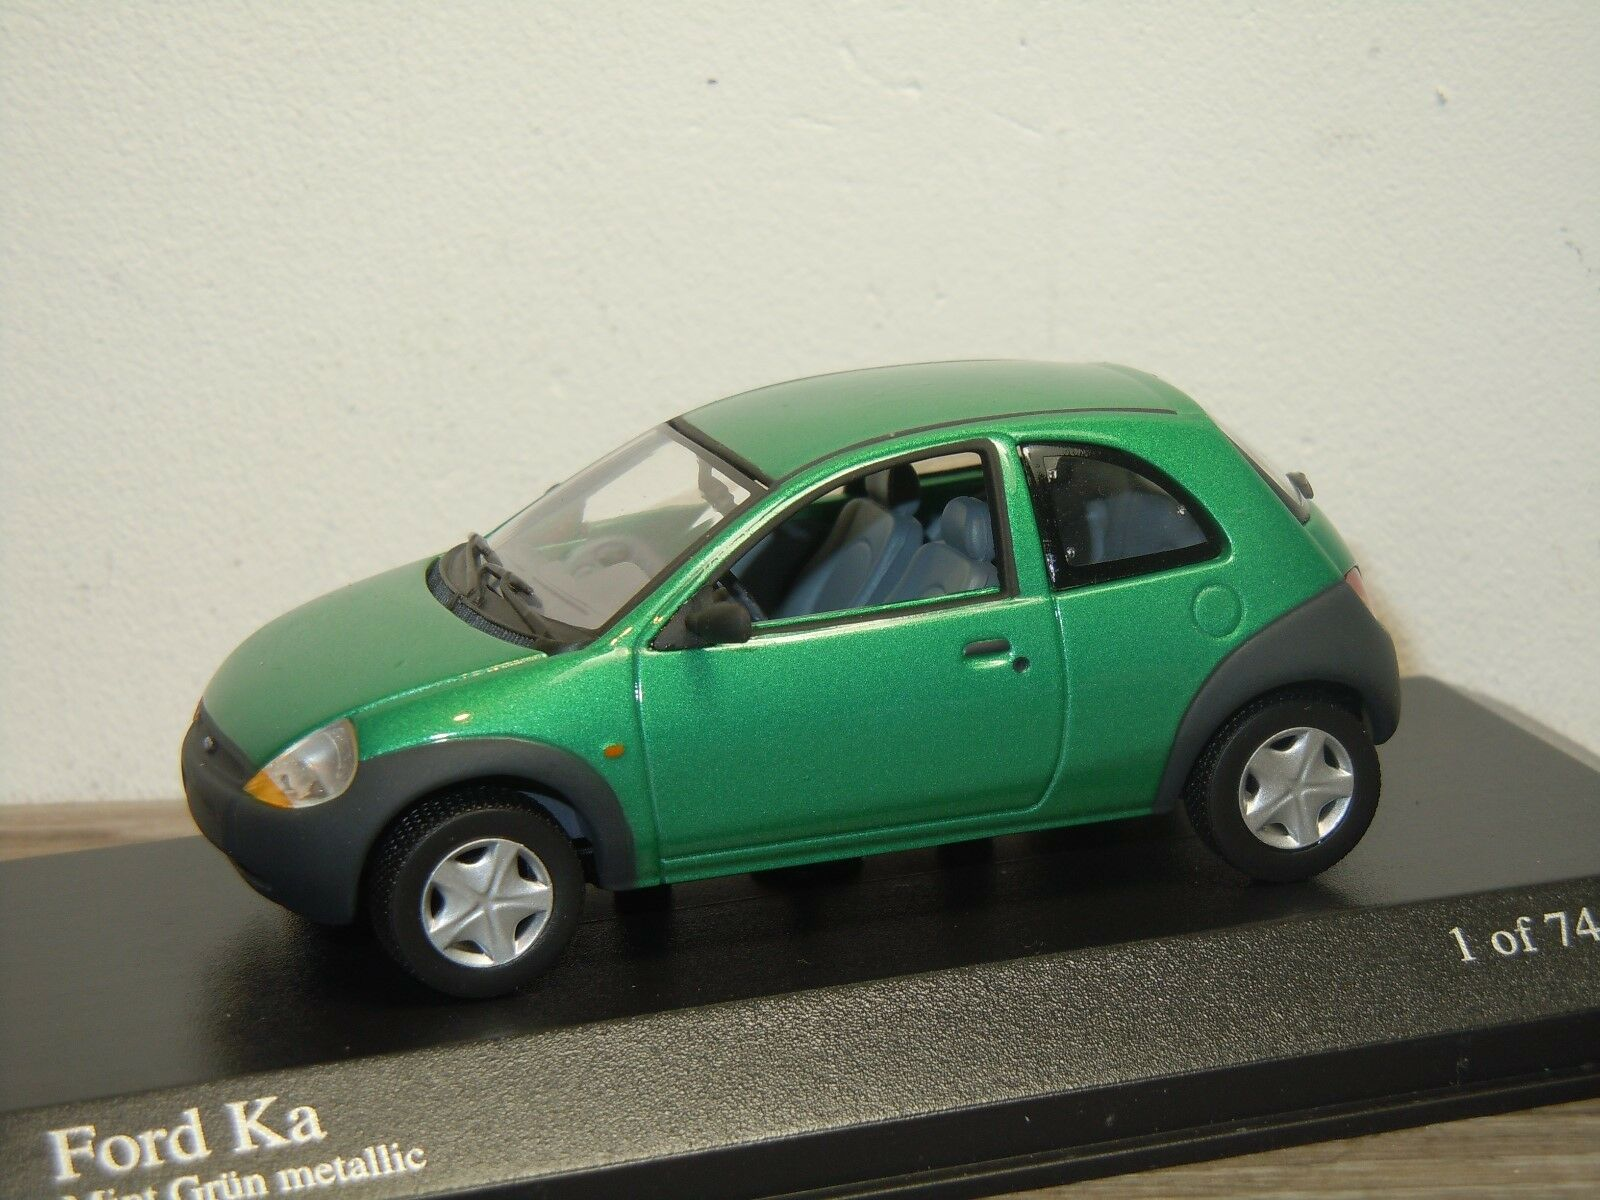 Ford ka - minichamps 1 43 in kasten  36469